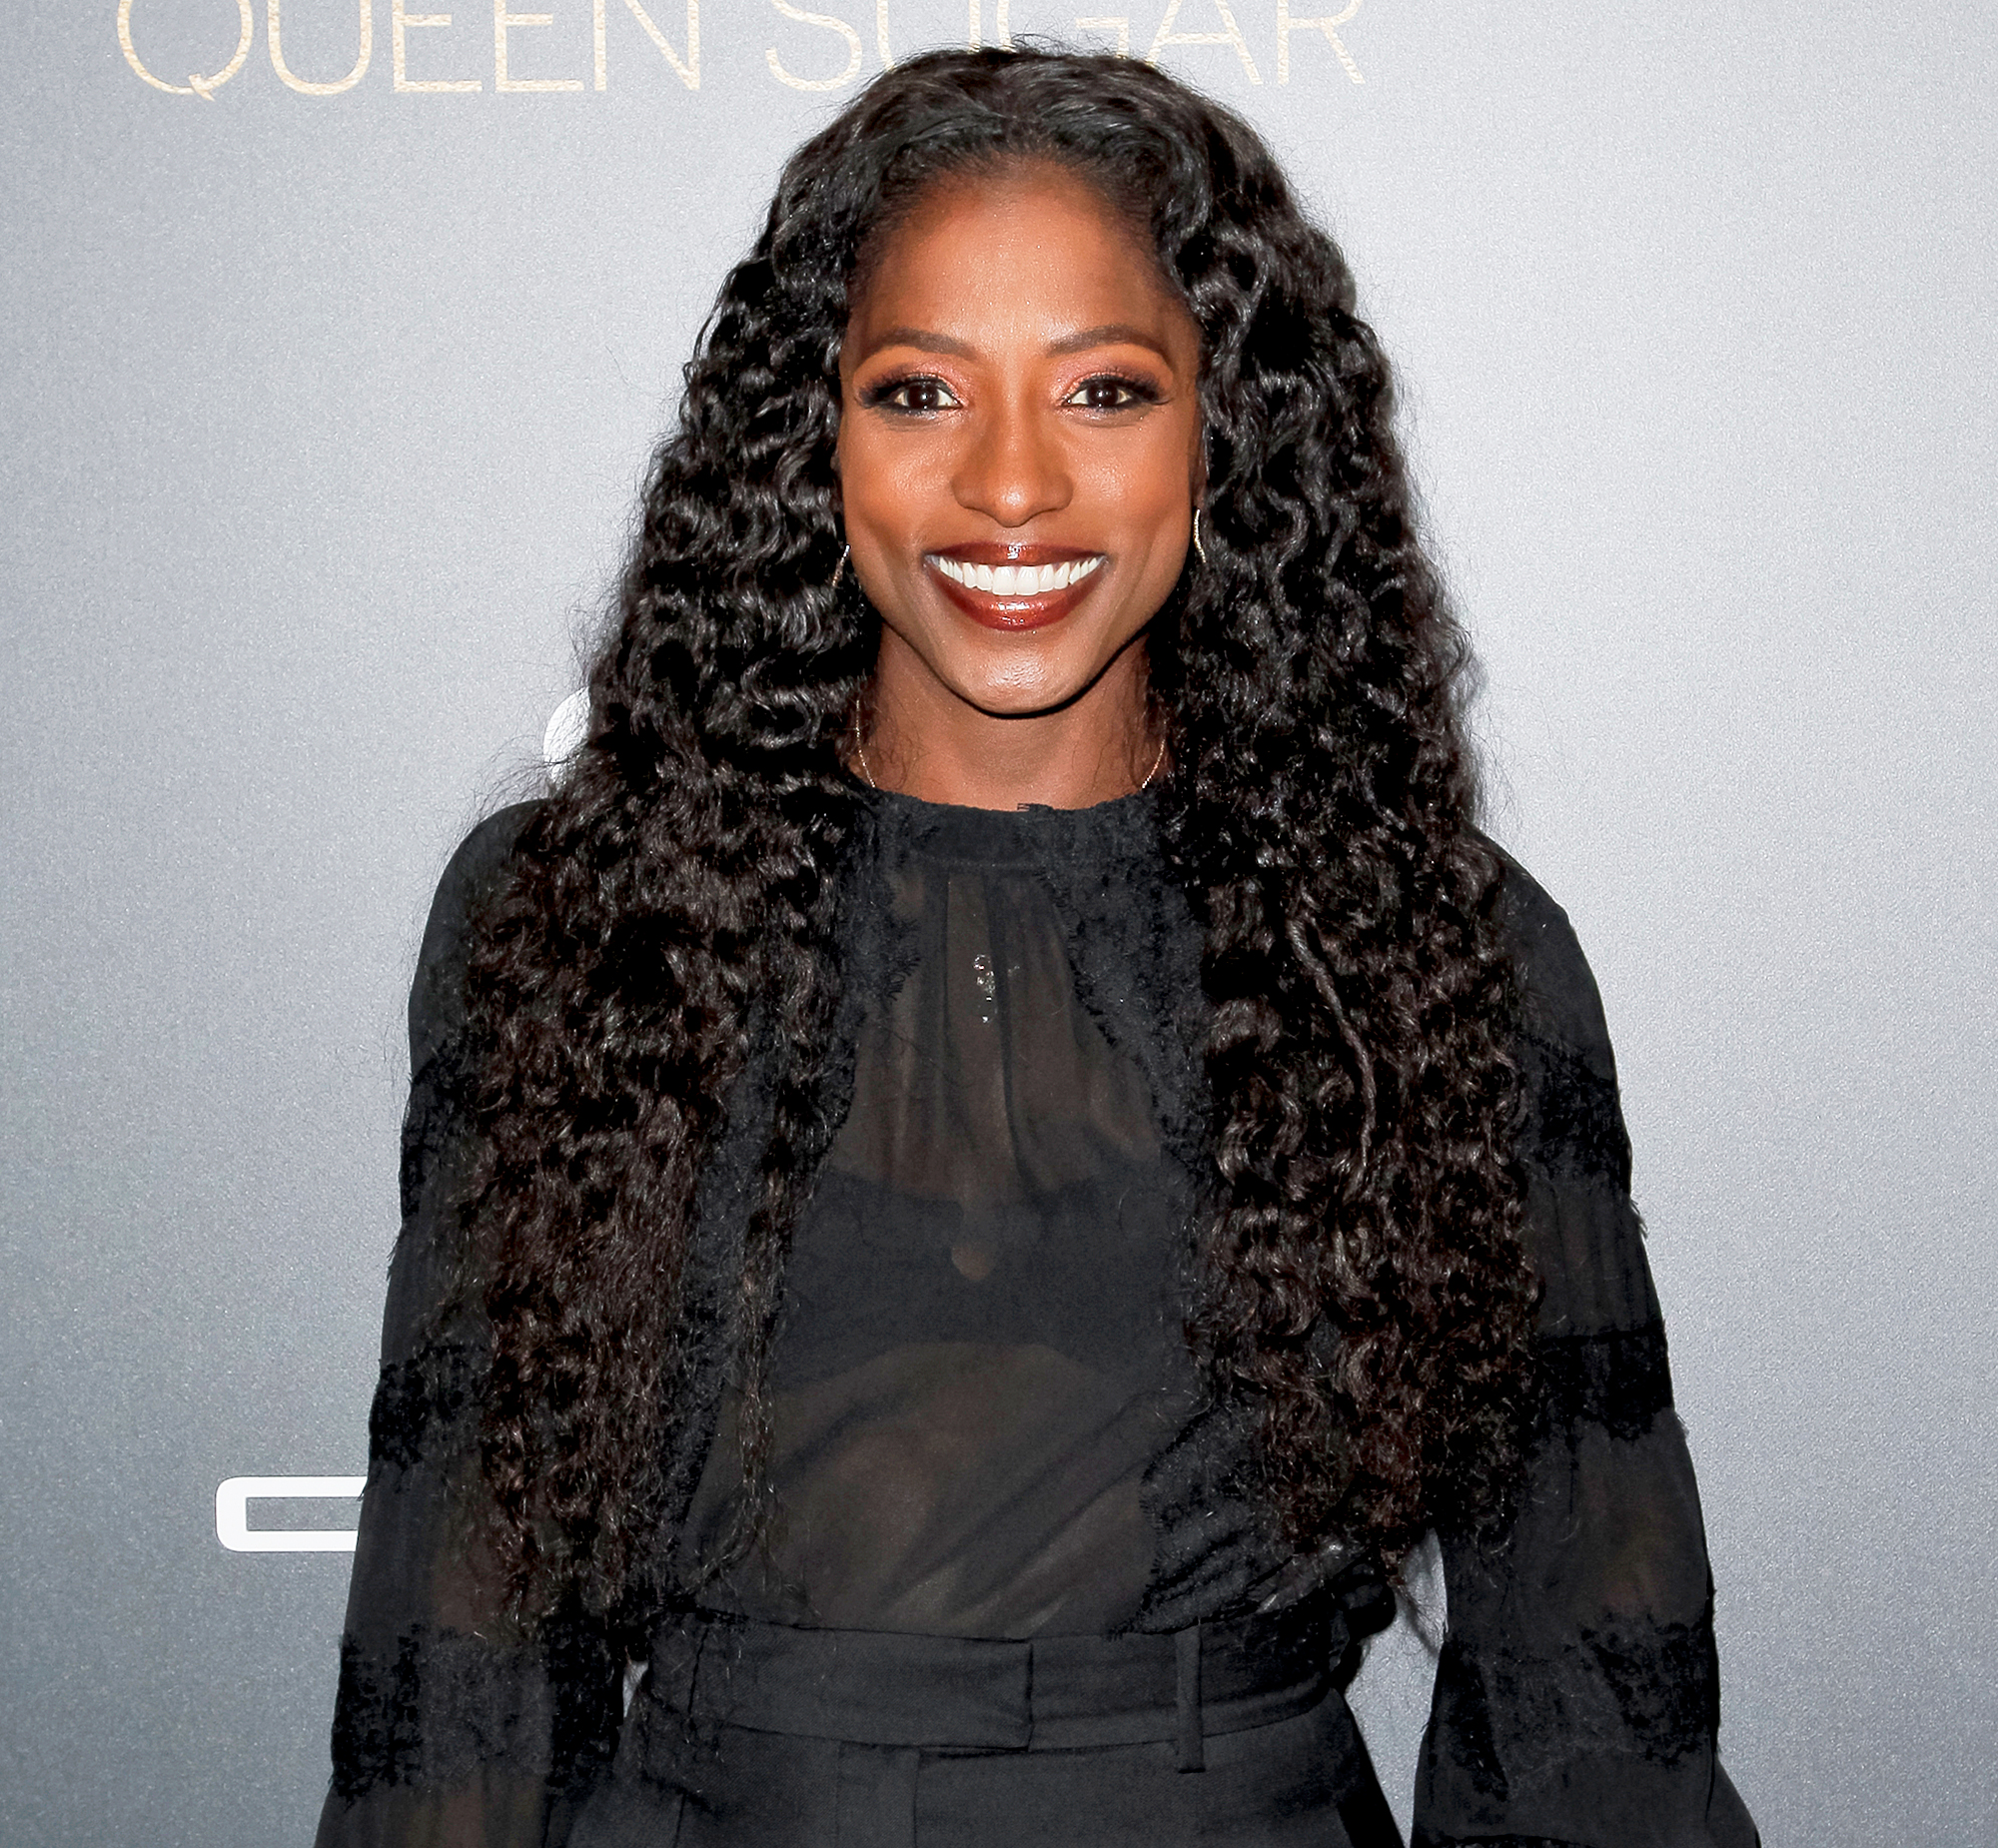 True Blood Star Rutina Wesley Announced Her Engagement To Girlfriend Shonda!